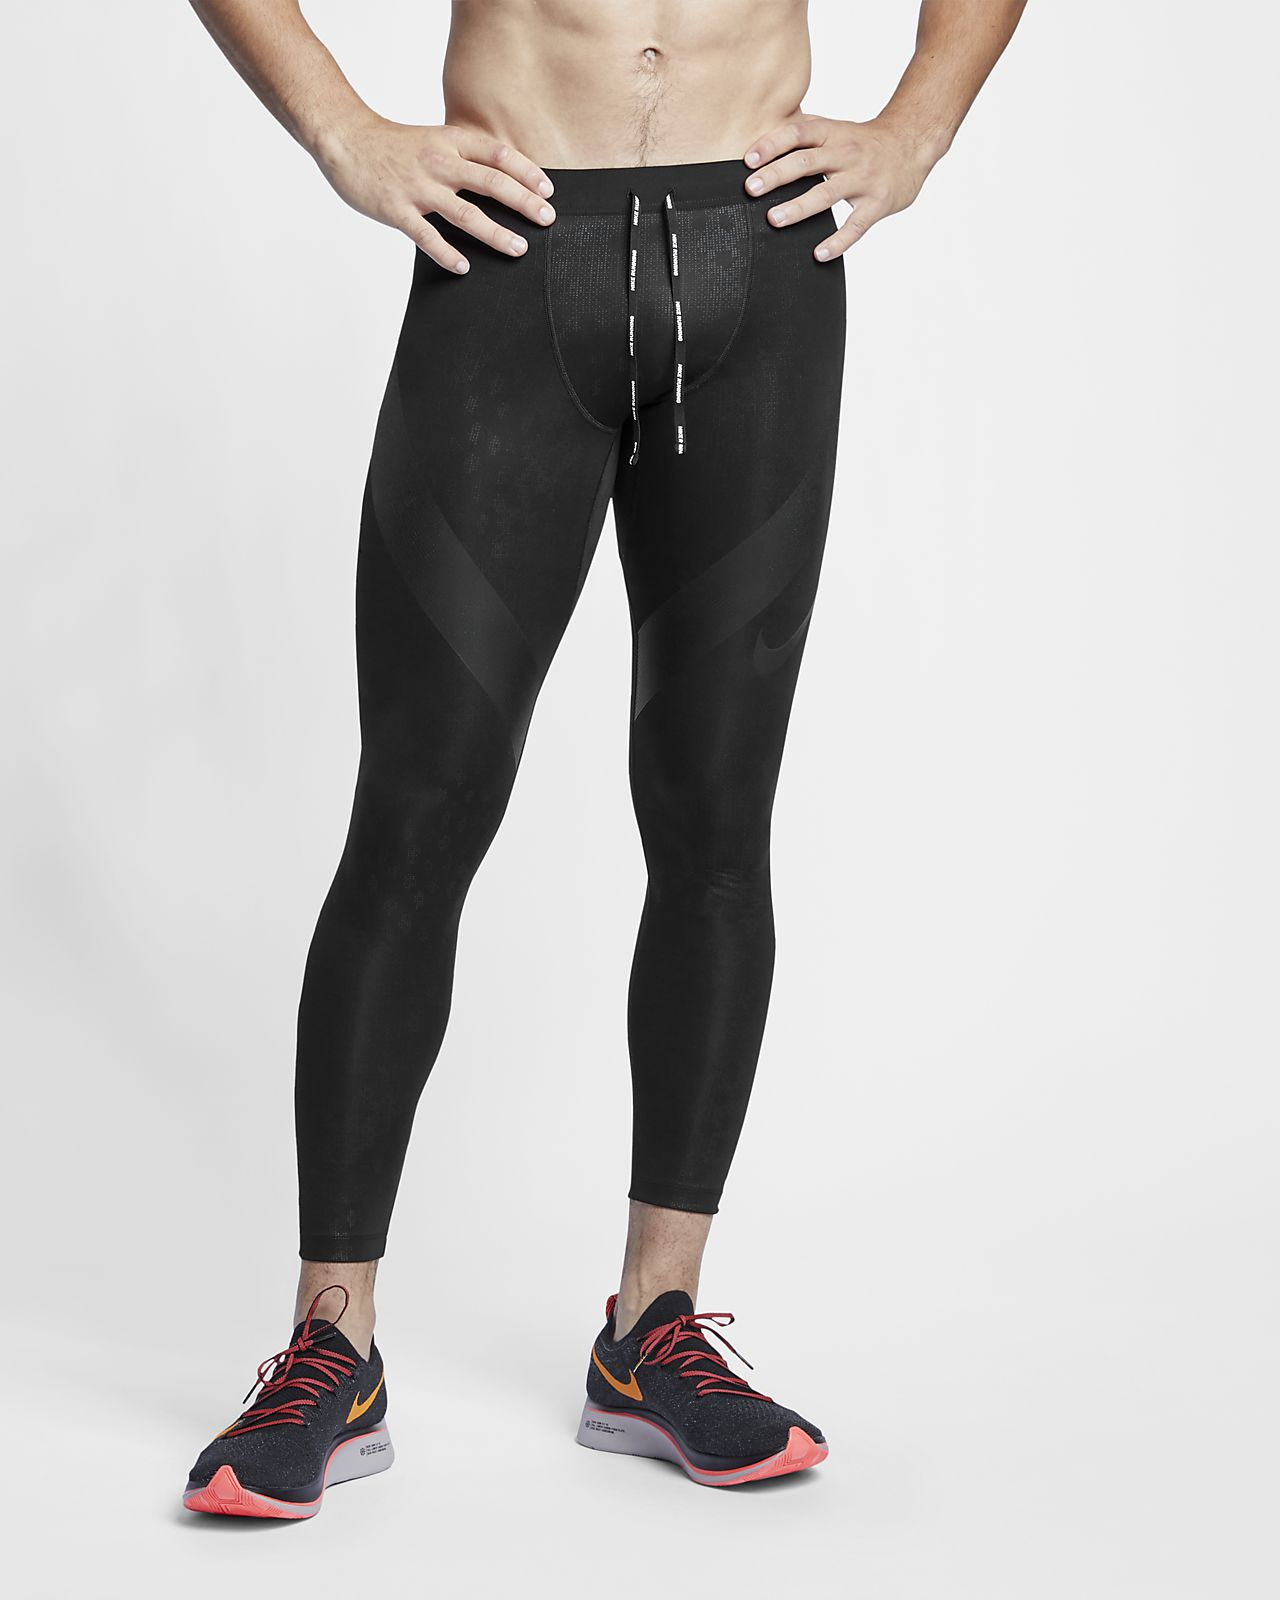 Nike Power Tech Lauf-Tights für Herren (ca. 69 cm)